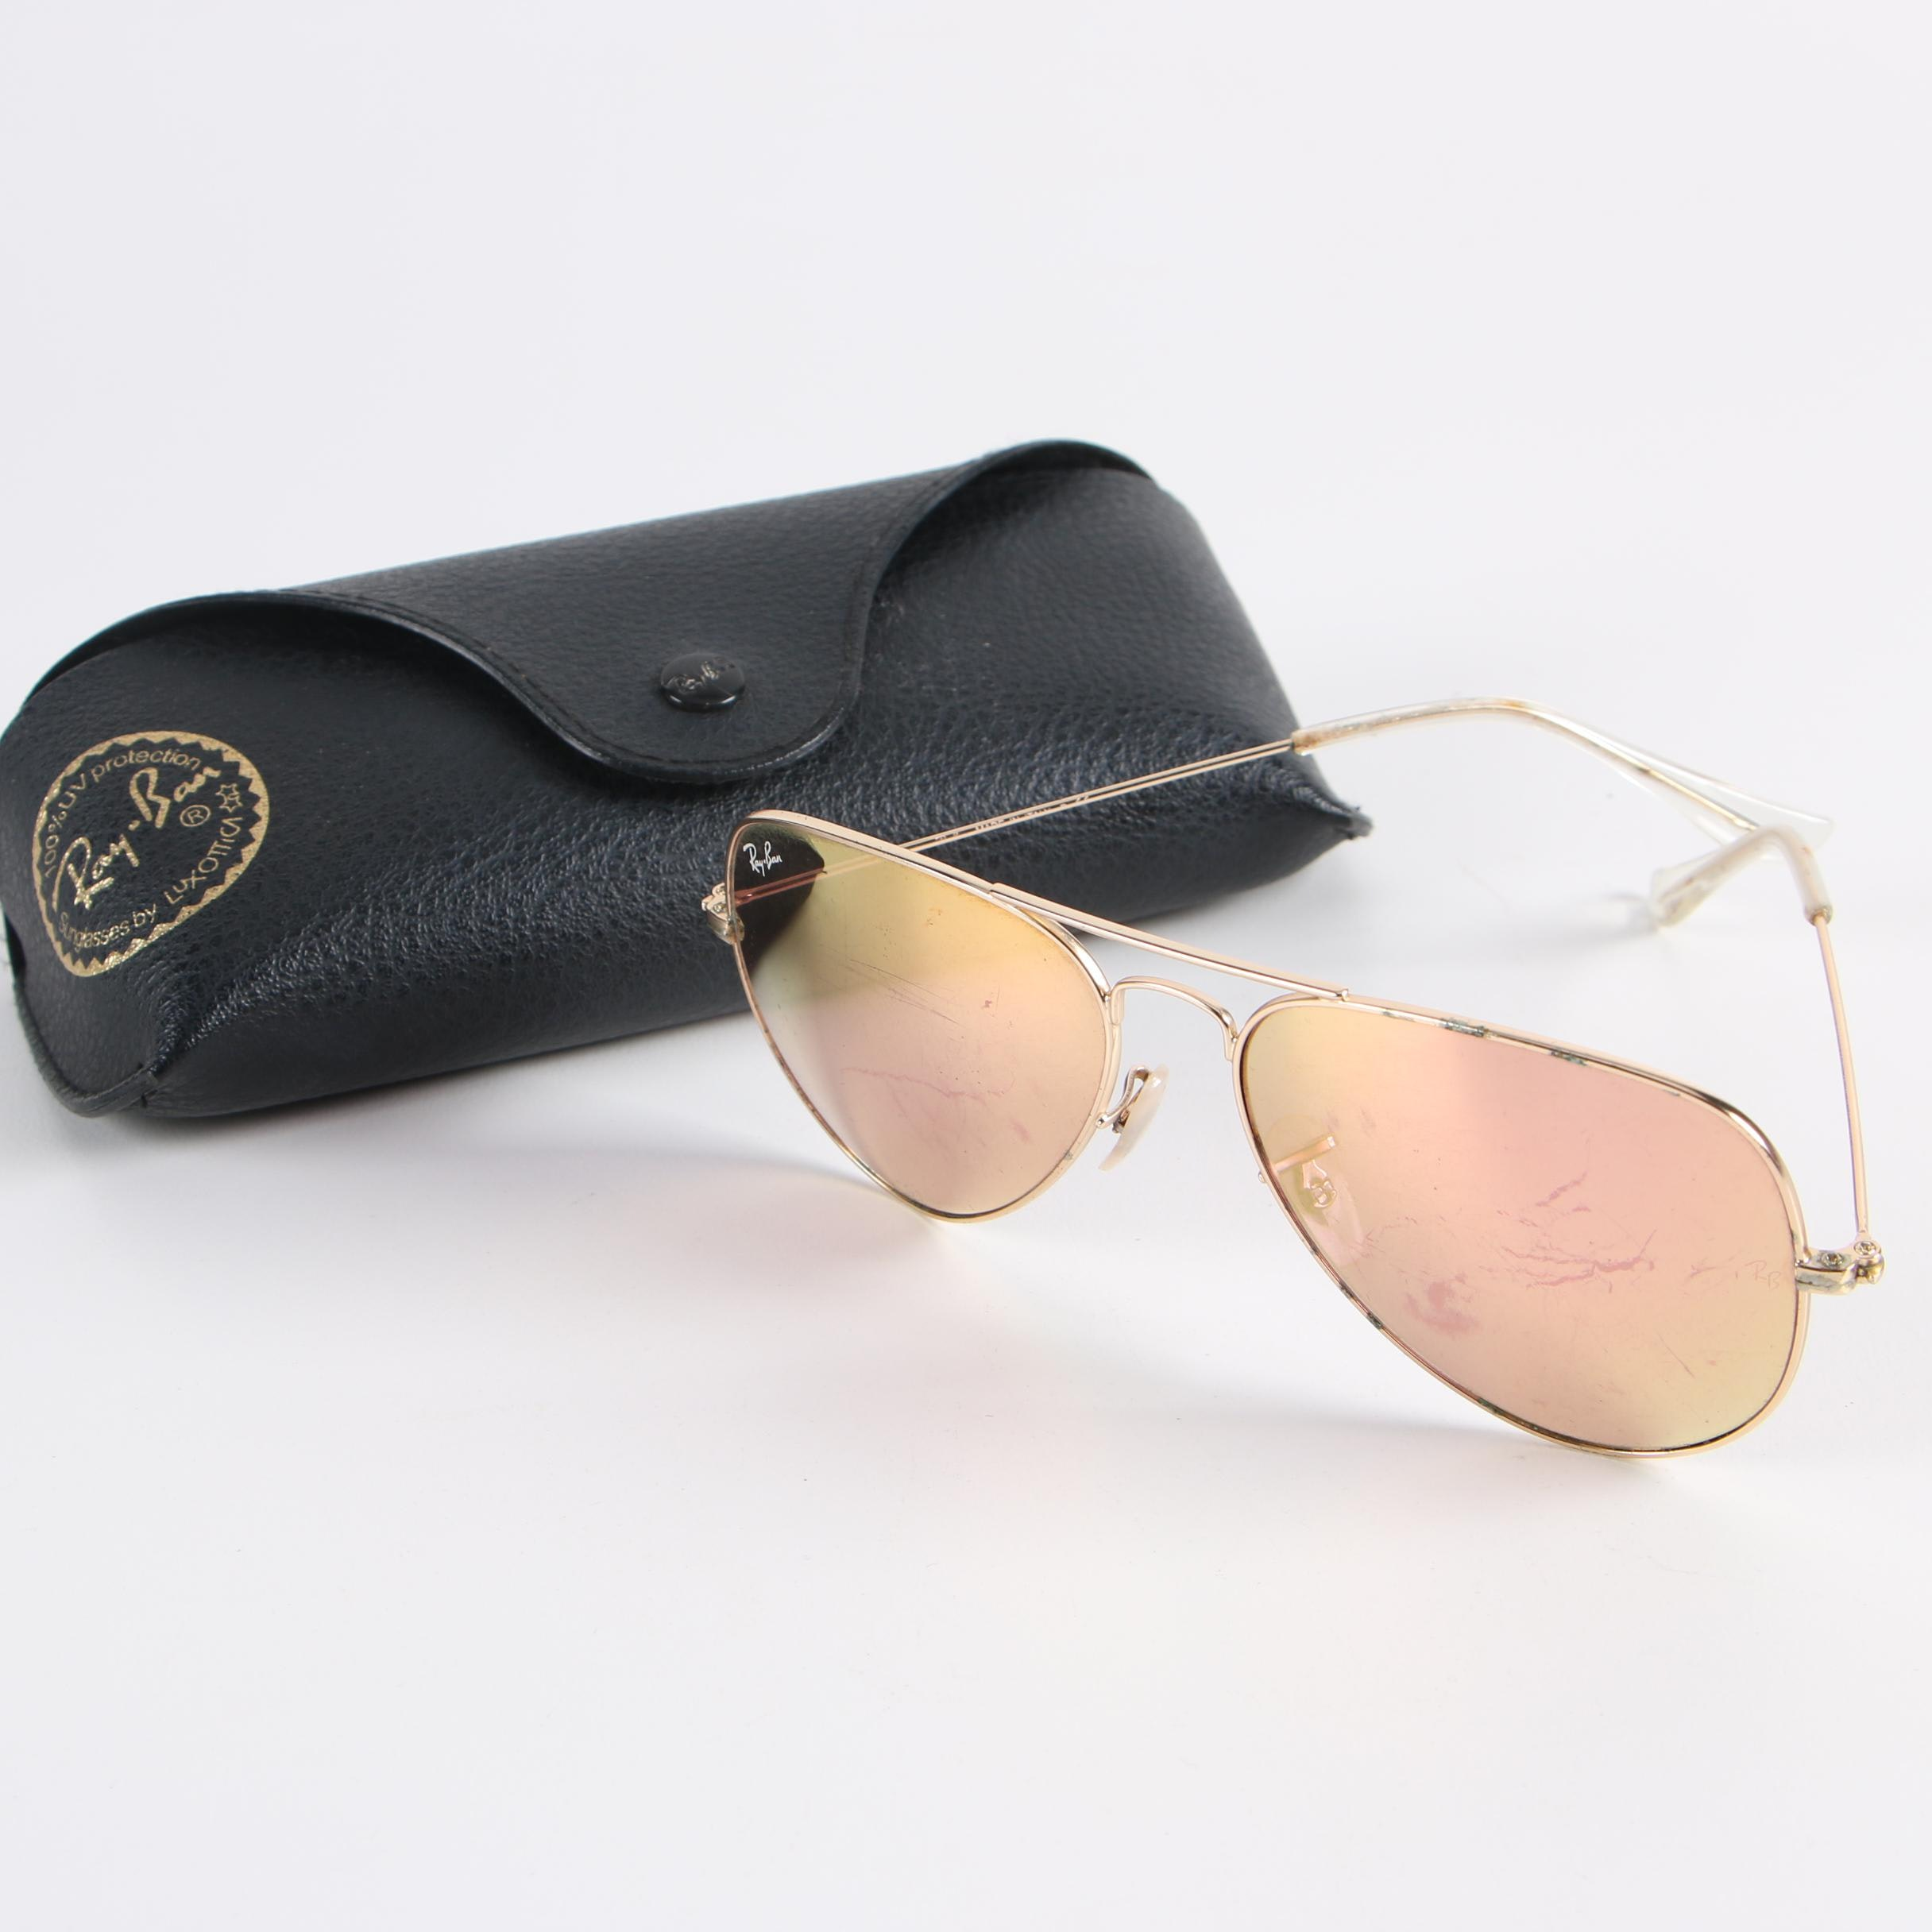 Ray-Ban Aviator Style Polarized Sunglasses with Case